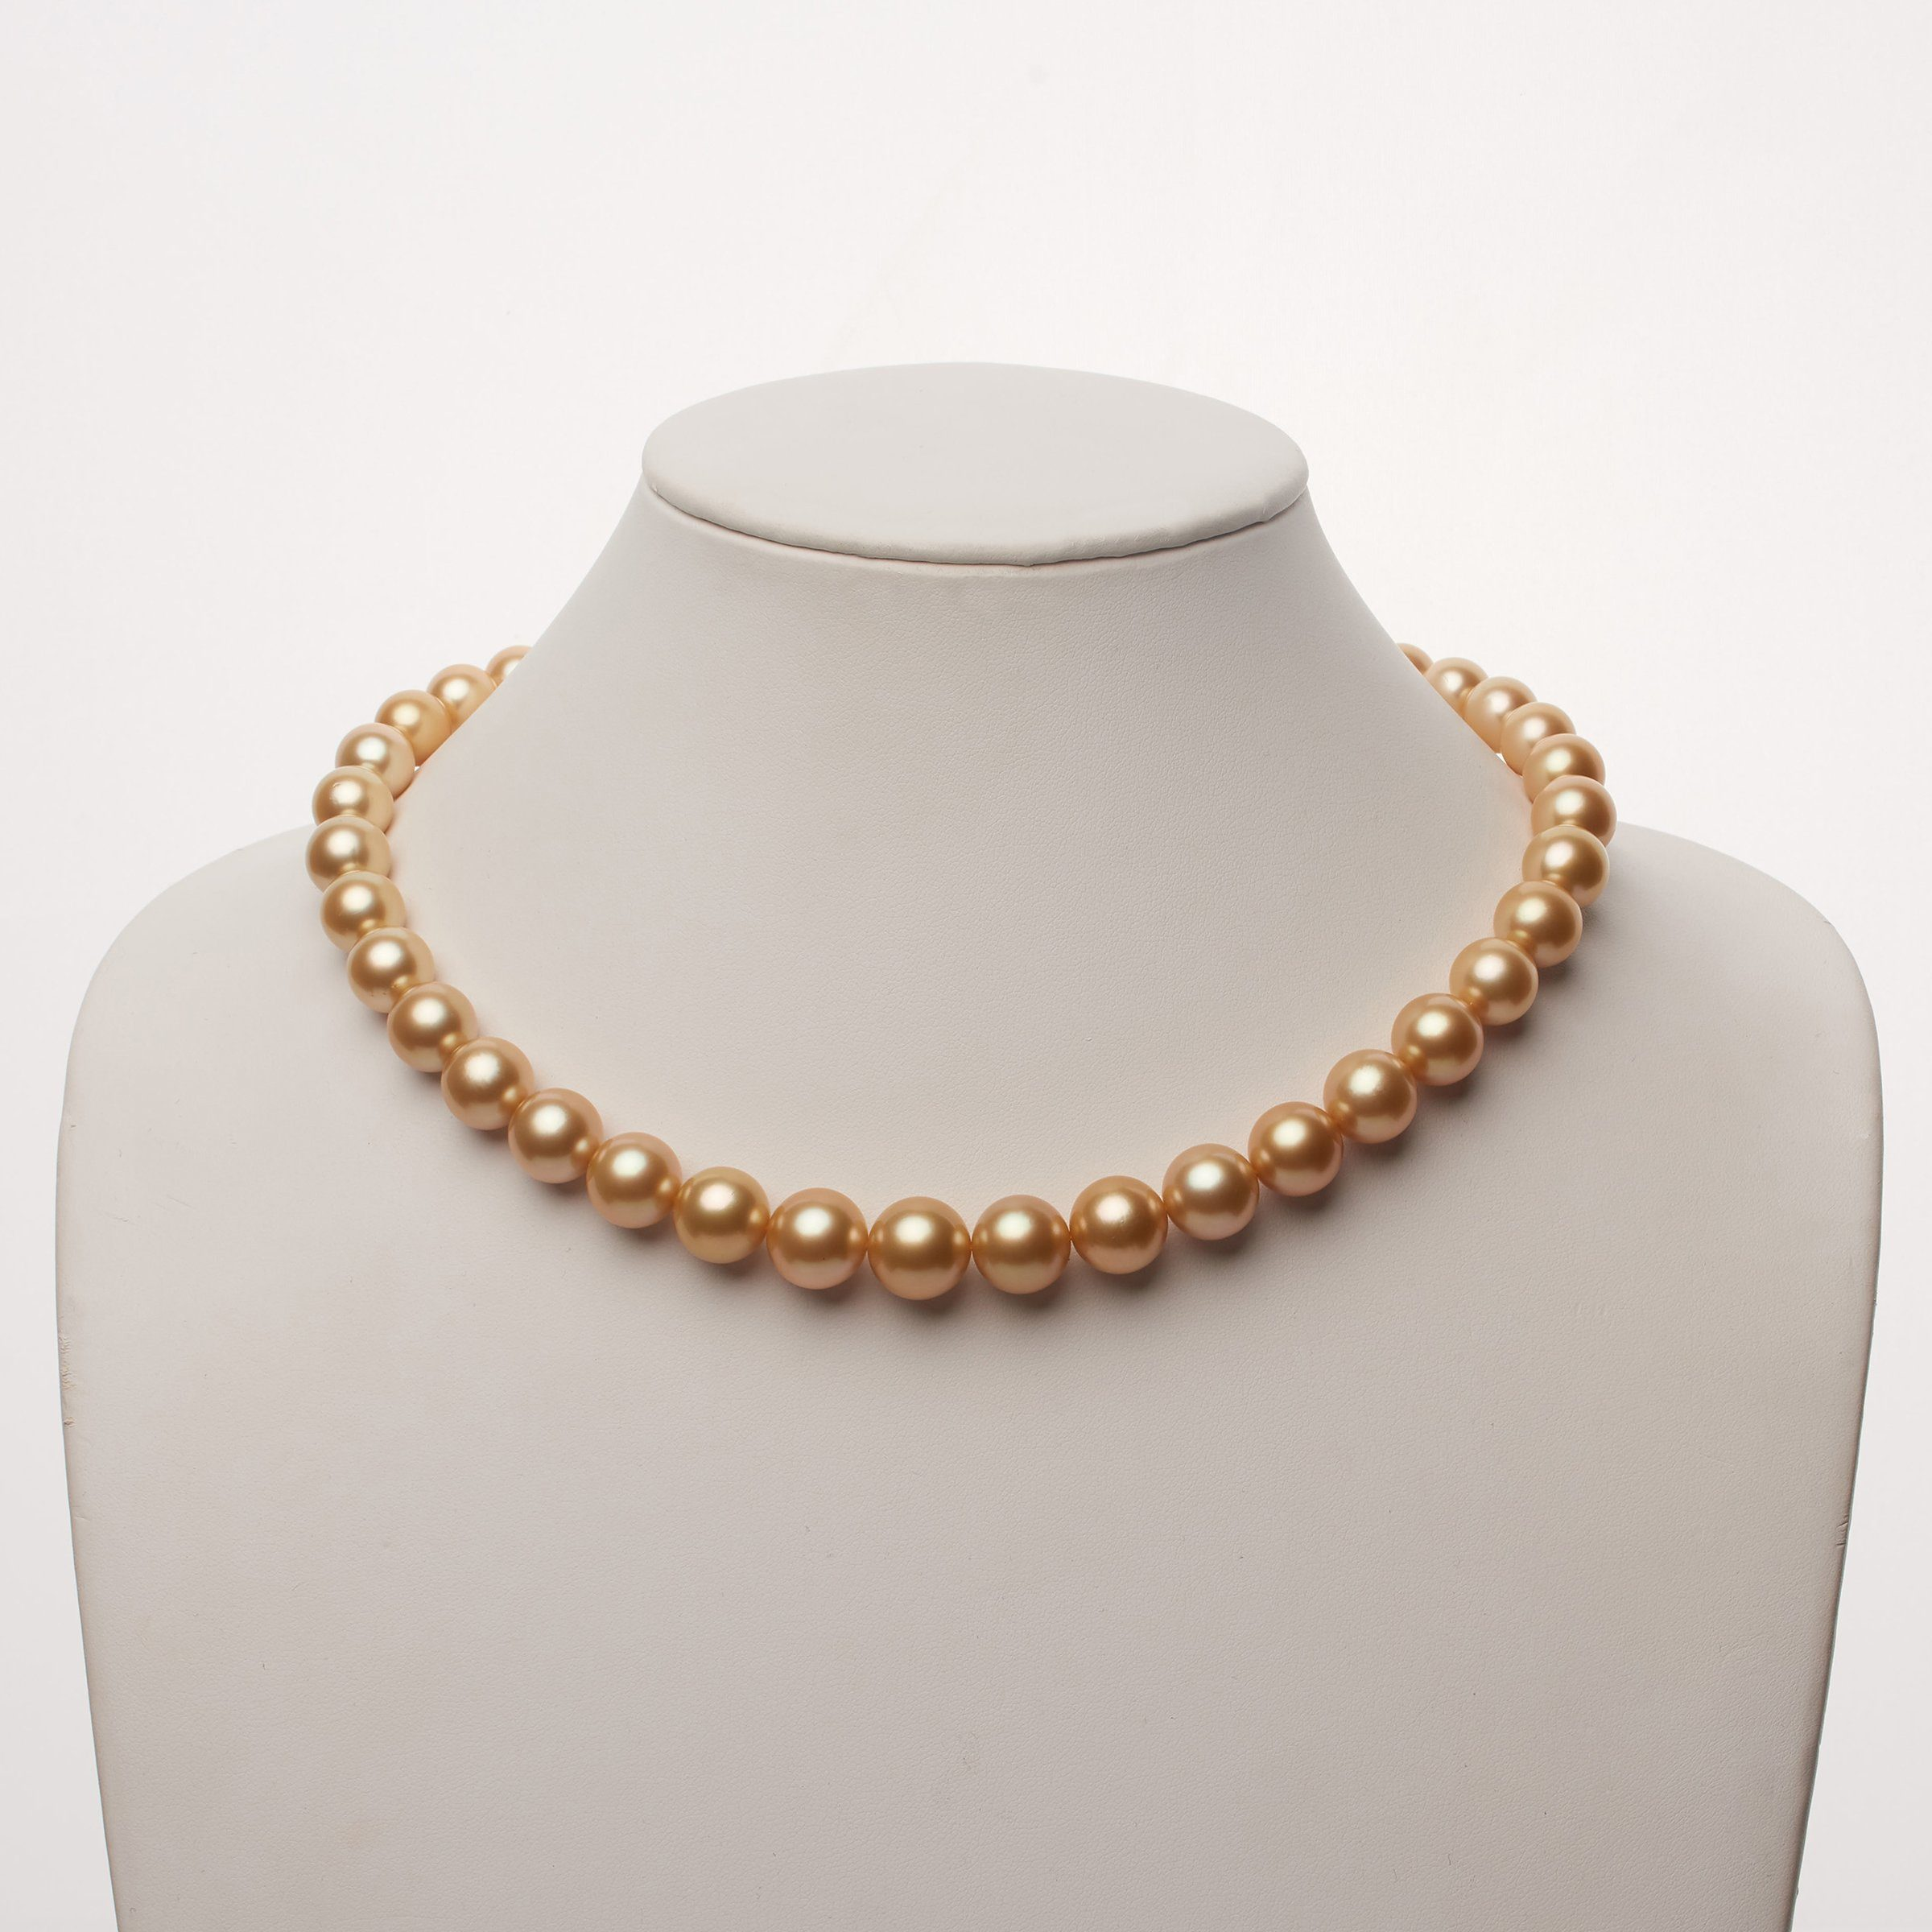 10.1-13.1 mm AAA Golden South Sea Round Pearl Necklace